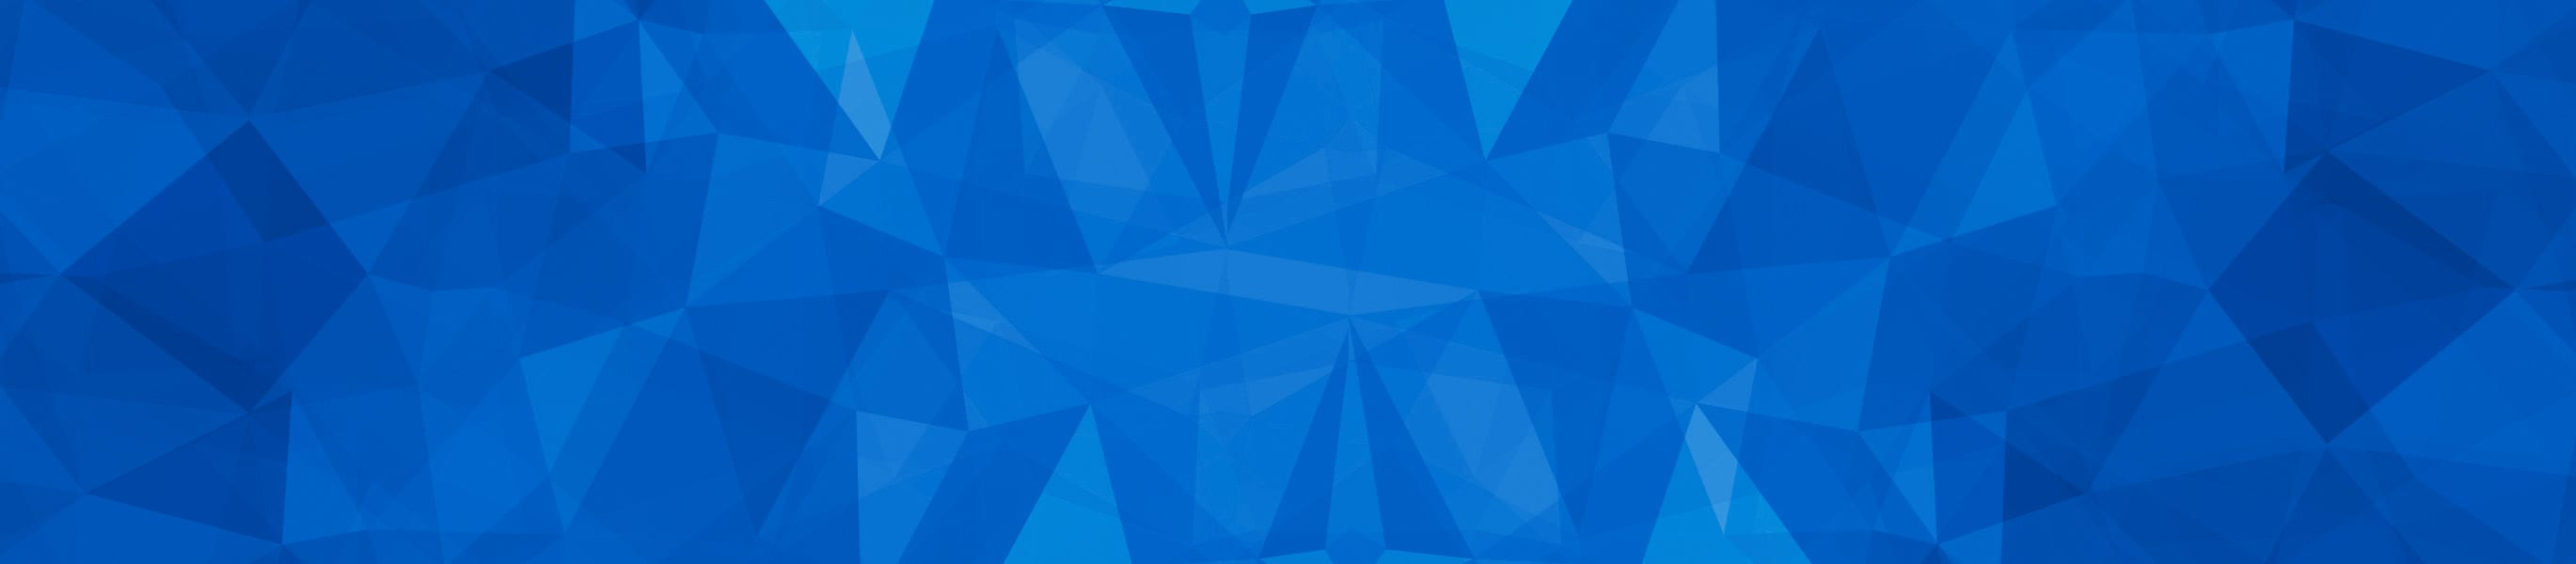 Blue Polygons BG